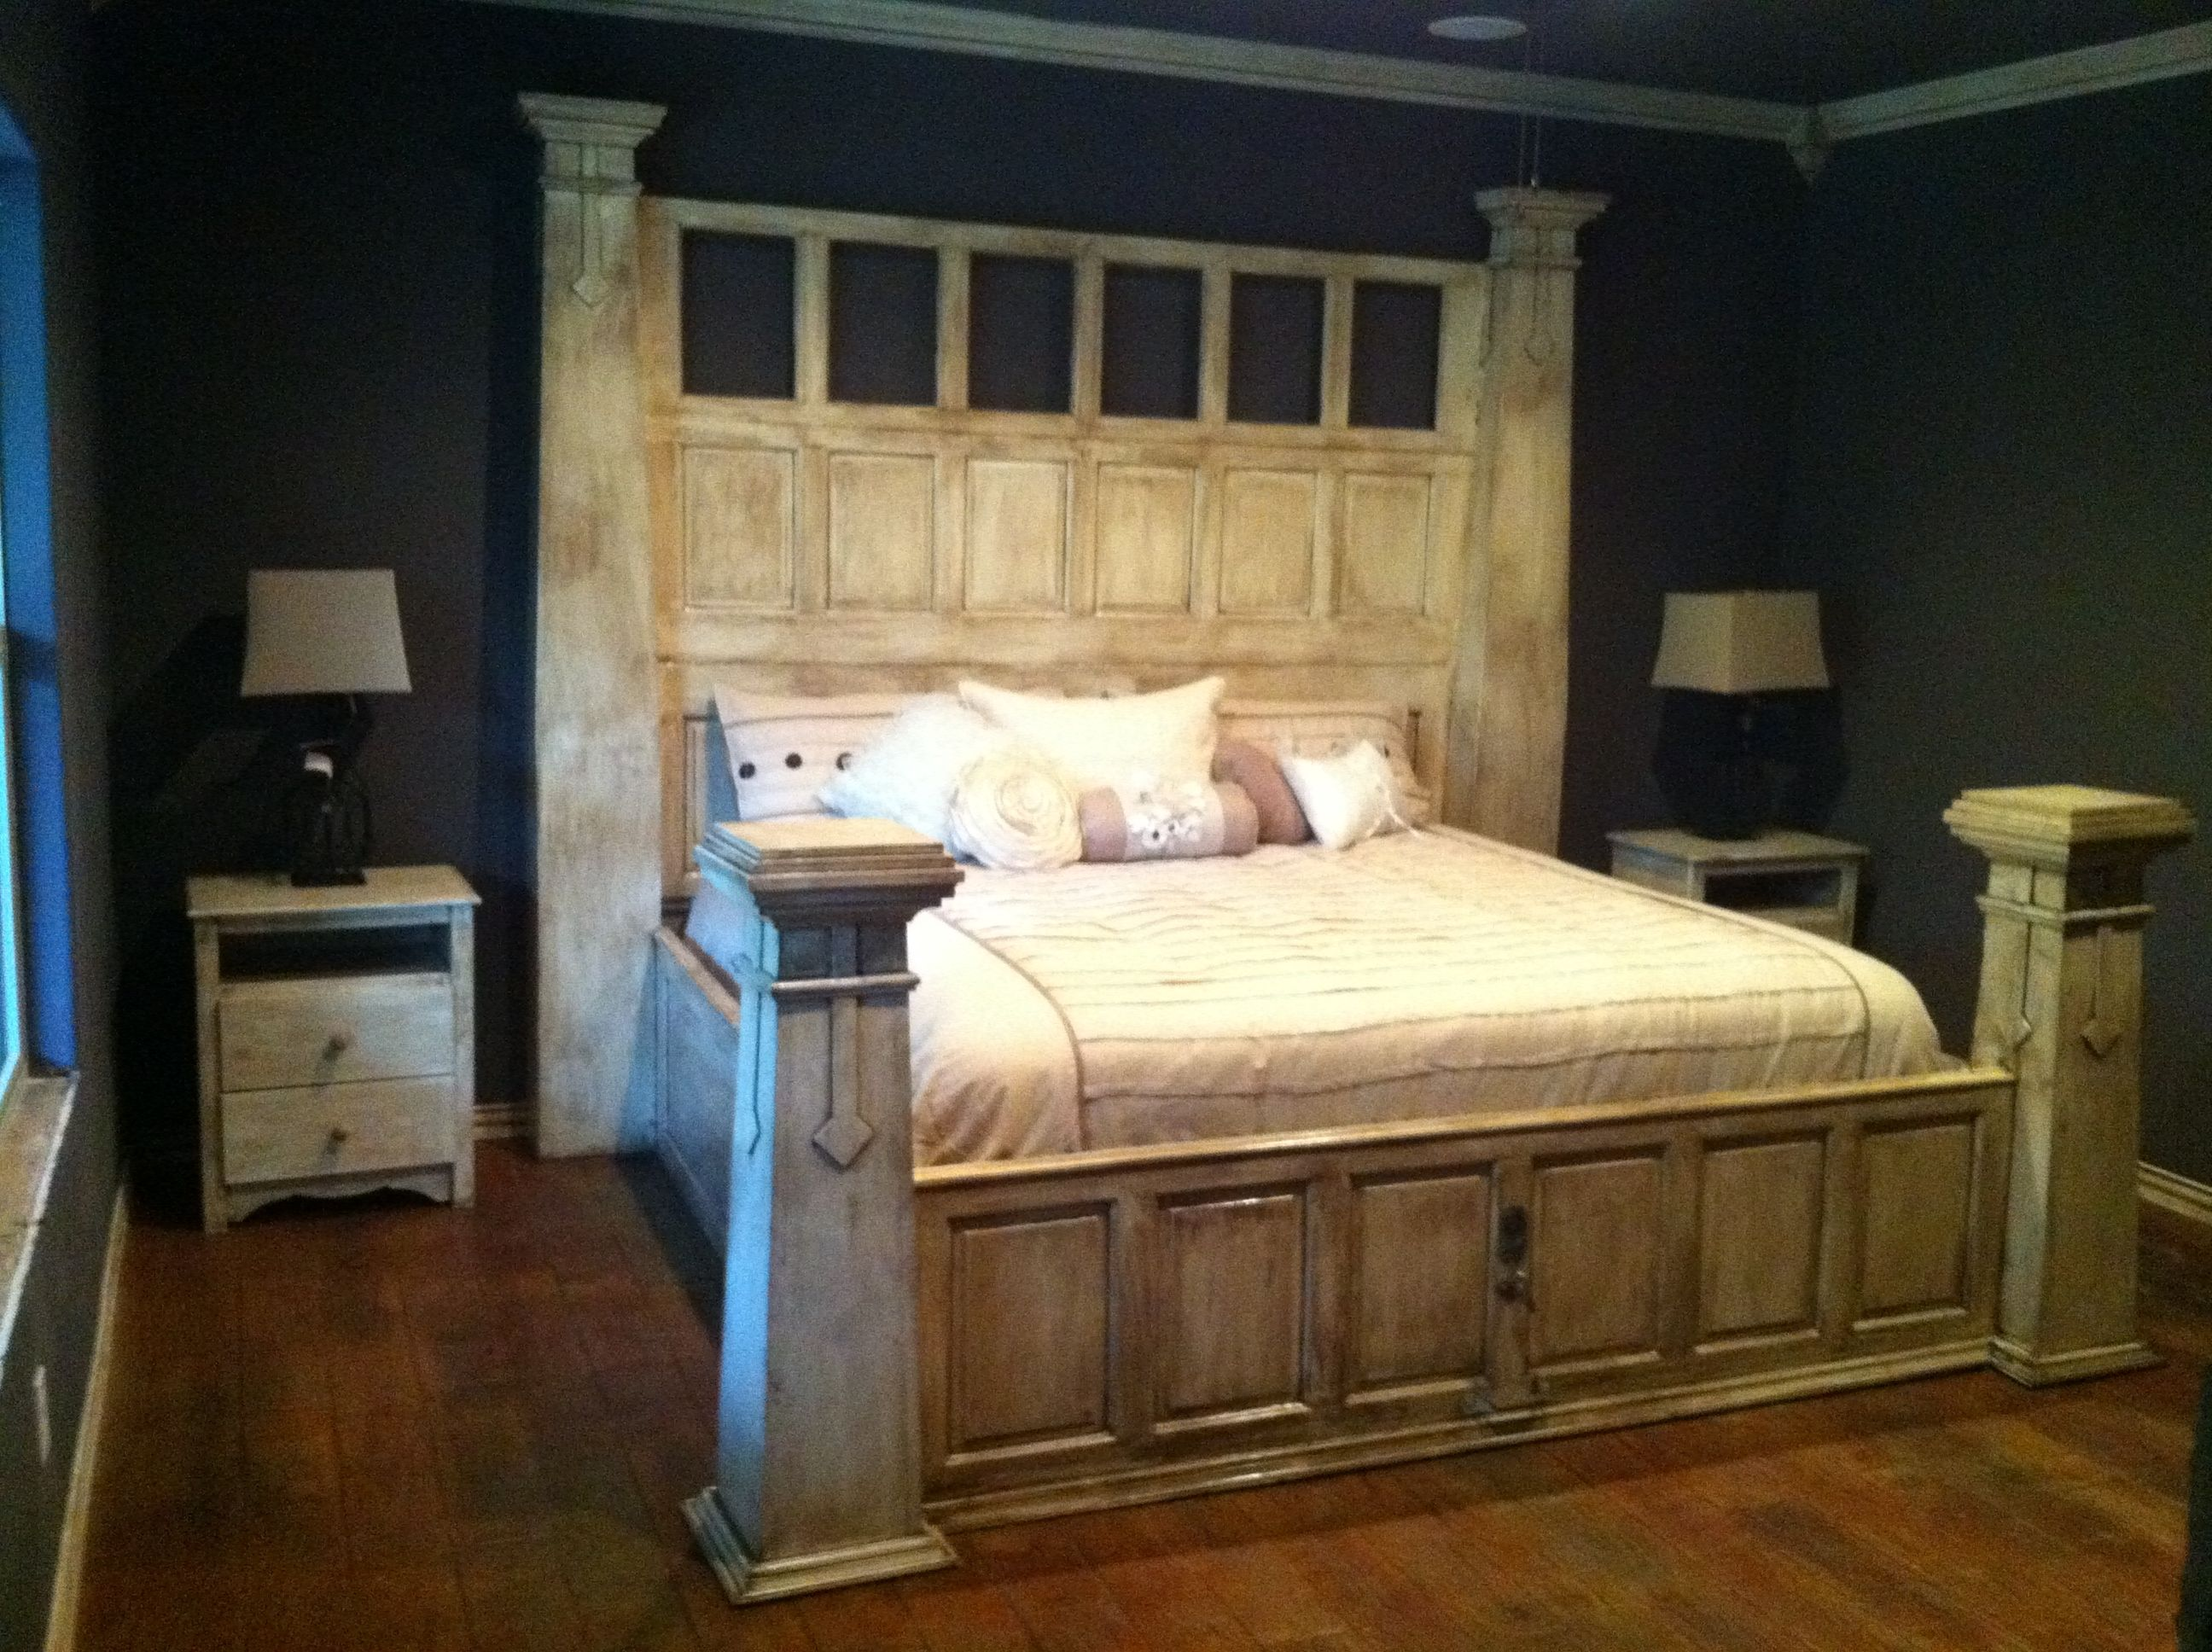 Finished product massive king size bed made from old